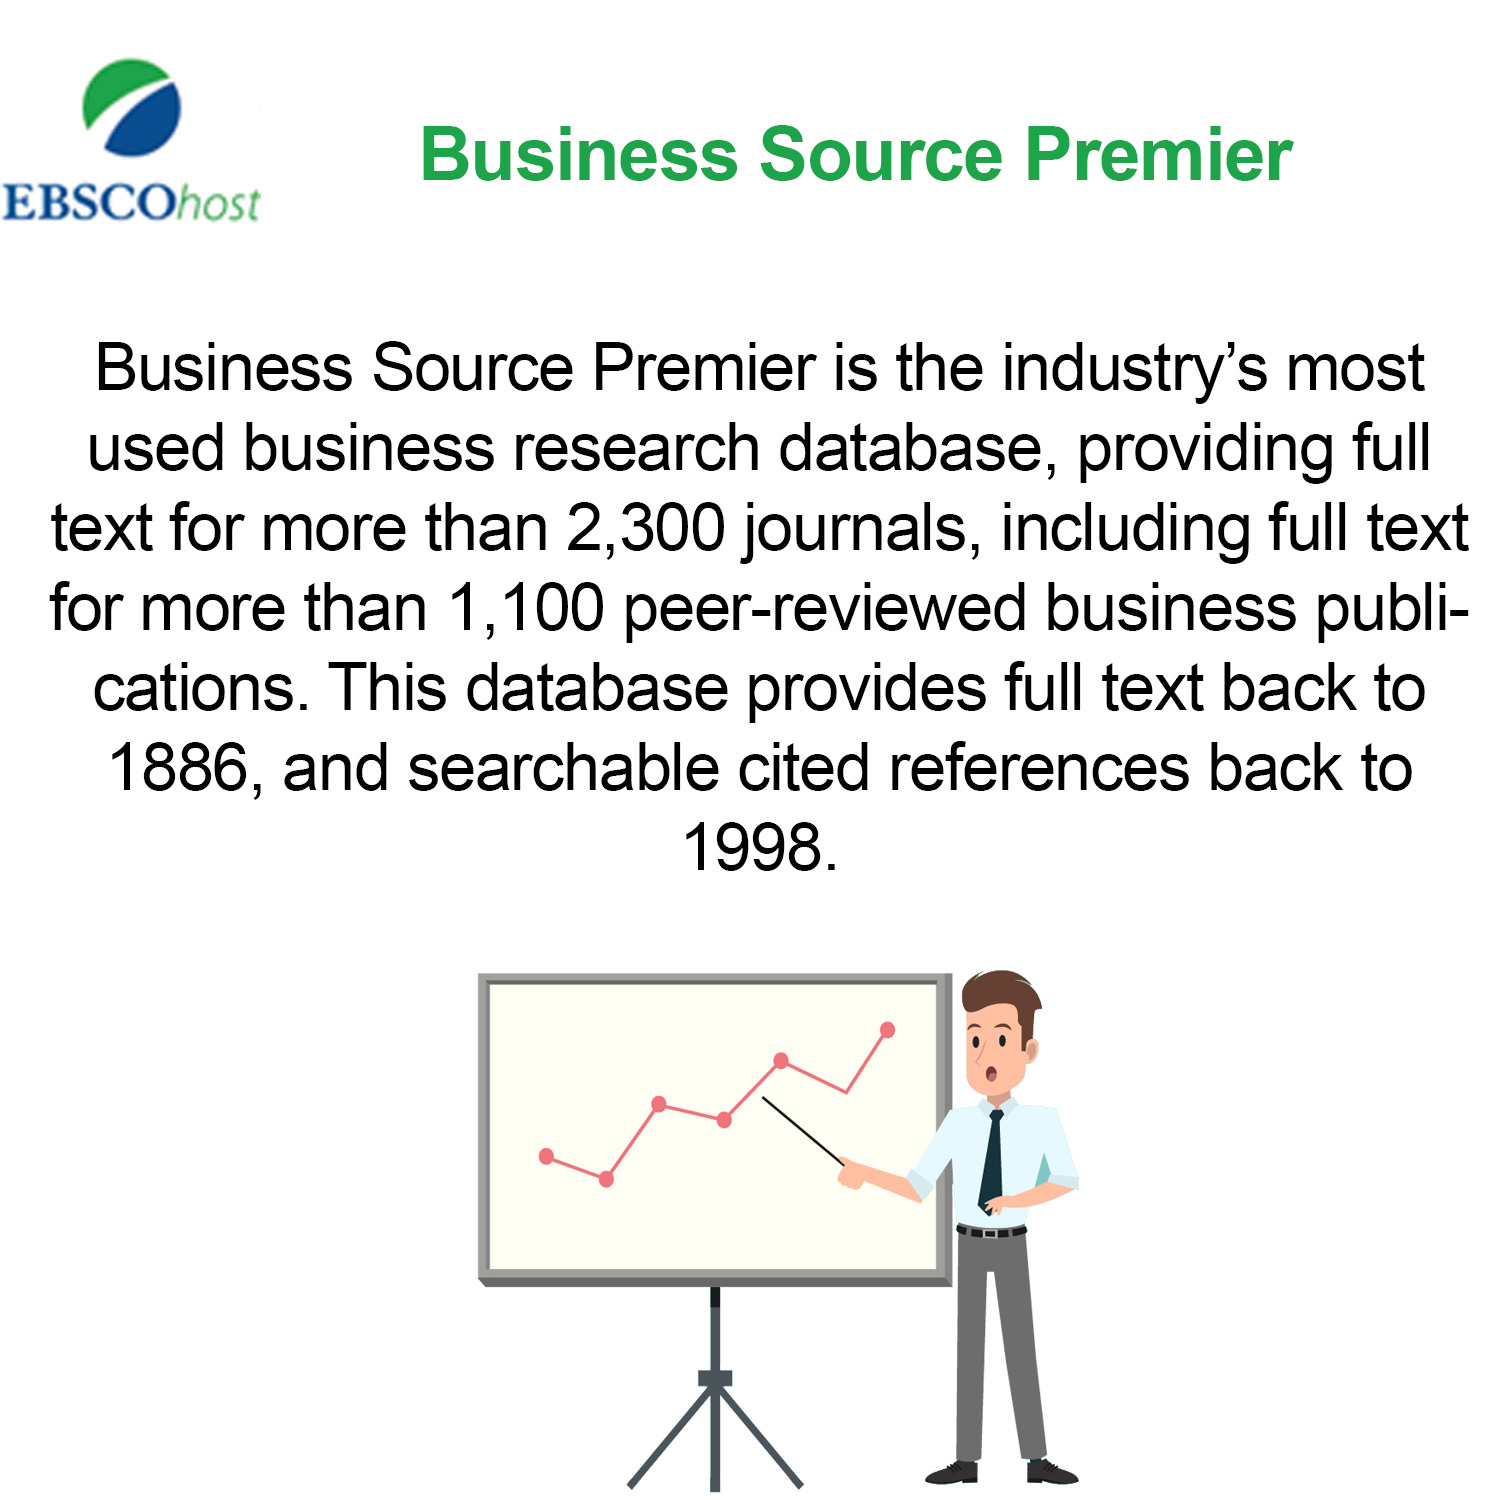 Small image with a synopsis of Ebsco Business database with clickable link